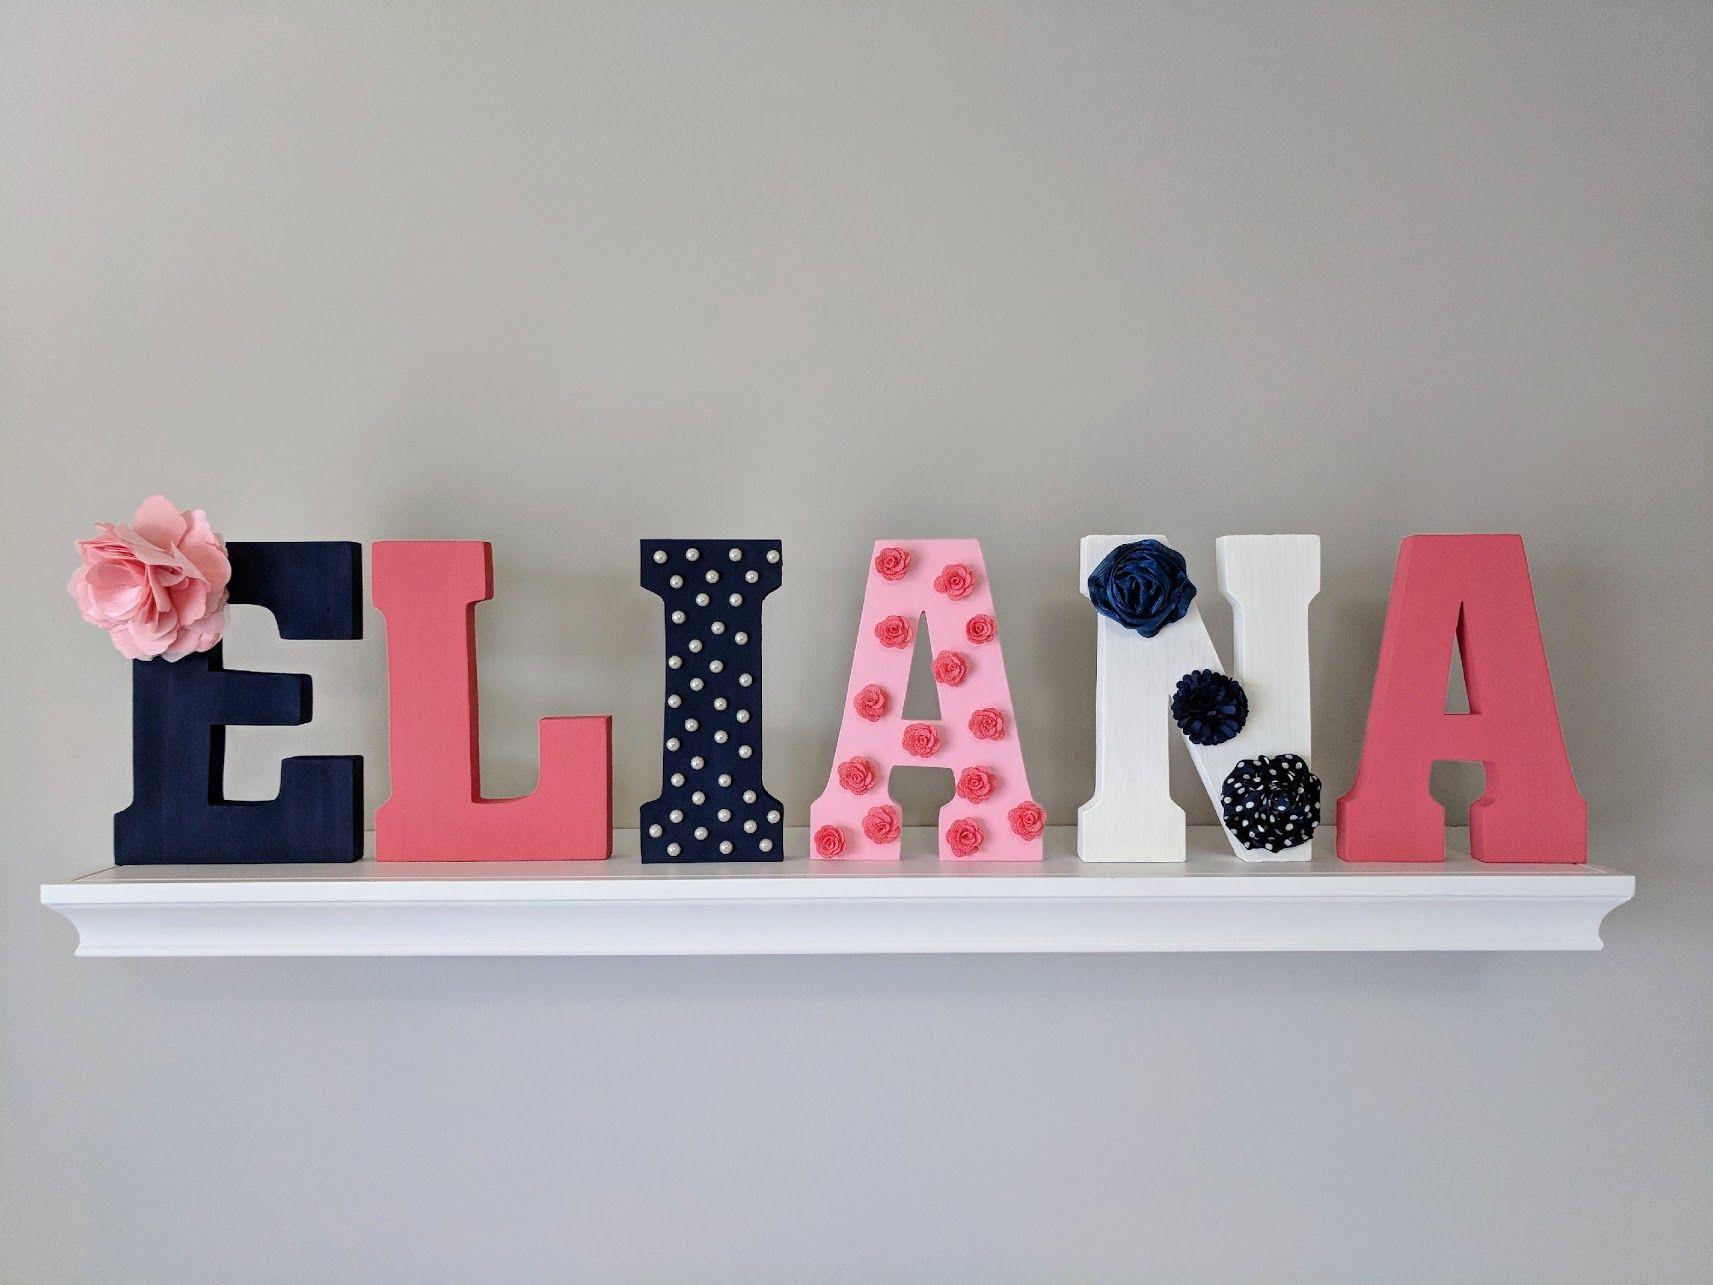 Eliana Name Decor Wall Letters Wall Hanging Or And Stand Alone